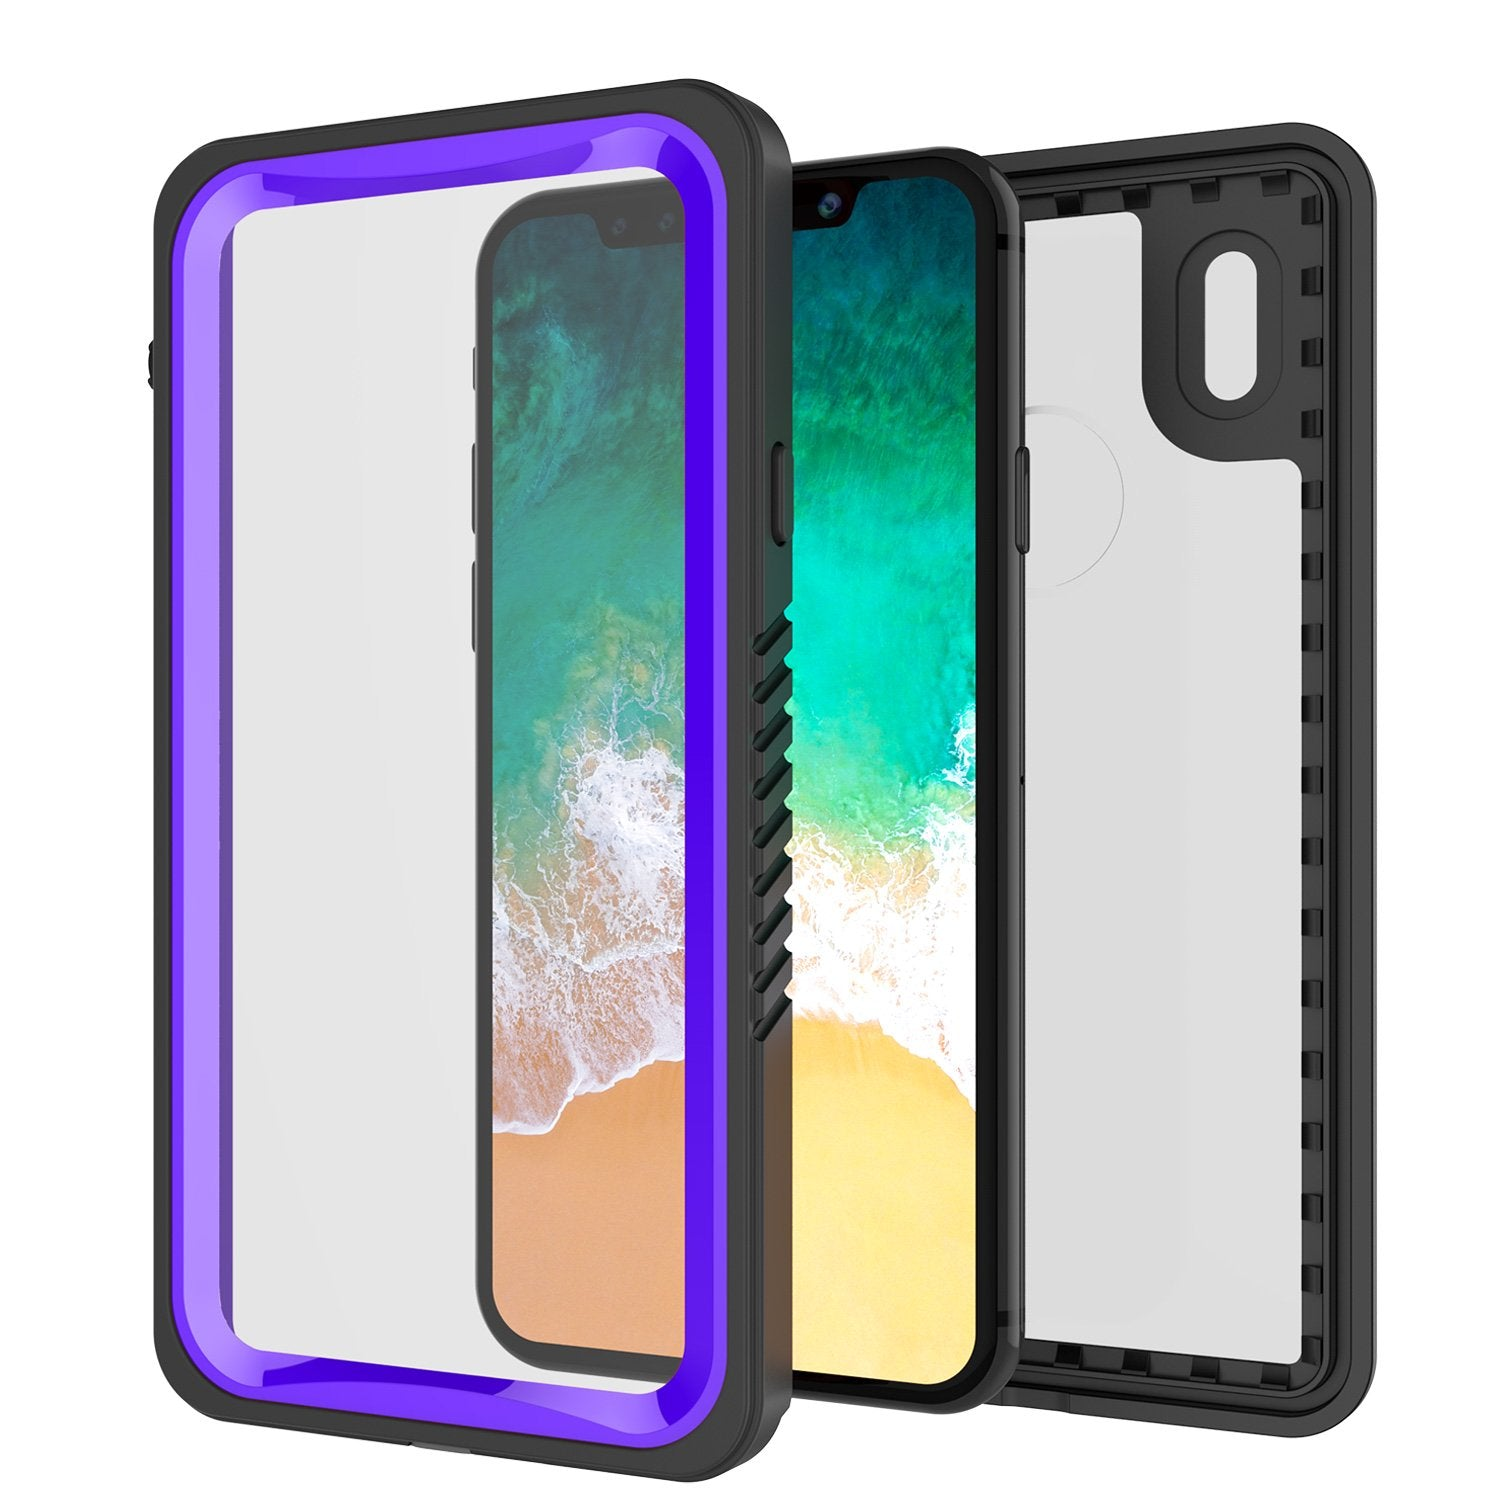 iPhone X Case, Punkcase [Extreme Series] [Slim Fit] [IP68 Certified] [Shockproof] [Snowproof] [Dirproof] Armor Cover W/ Built In Screen Protector for Apple iPhone 10 [PURPLE]